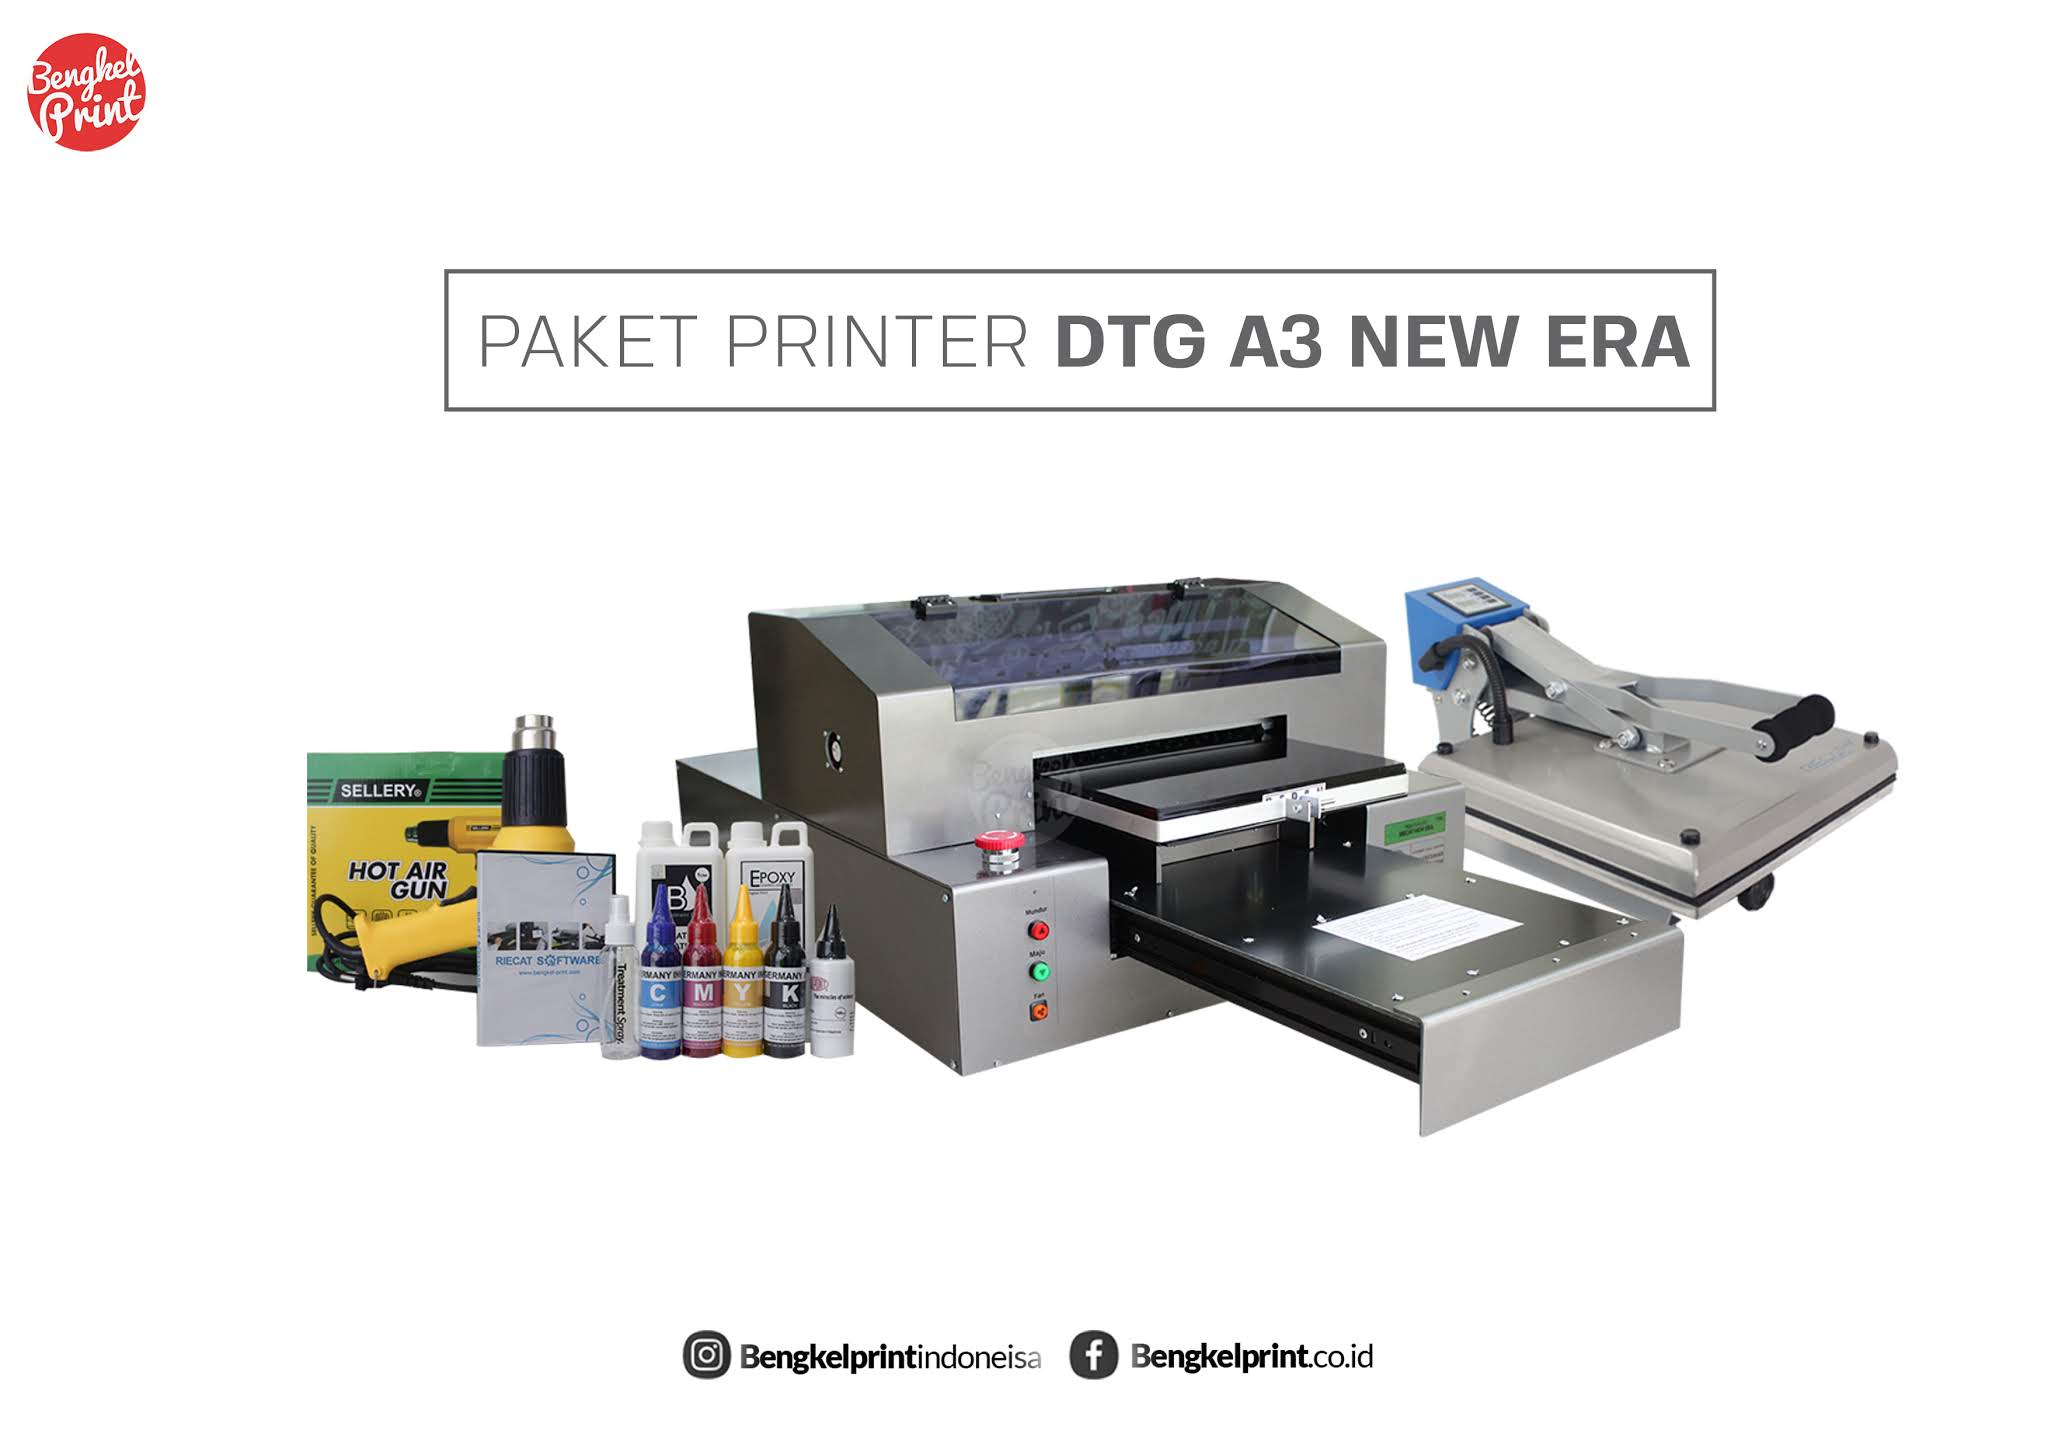 Paket printer dtg a3 new era bengkel print indonesia